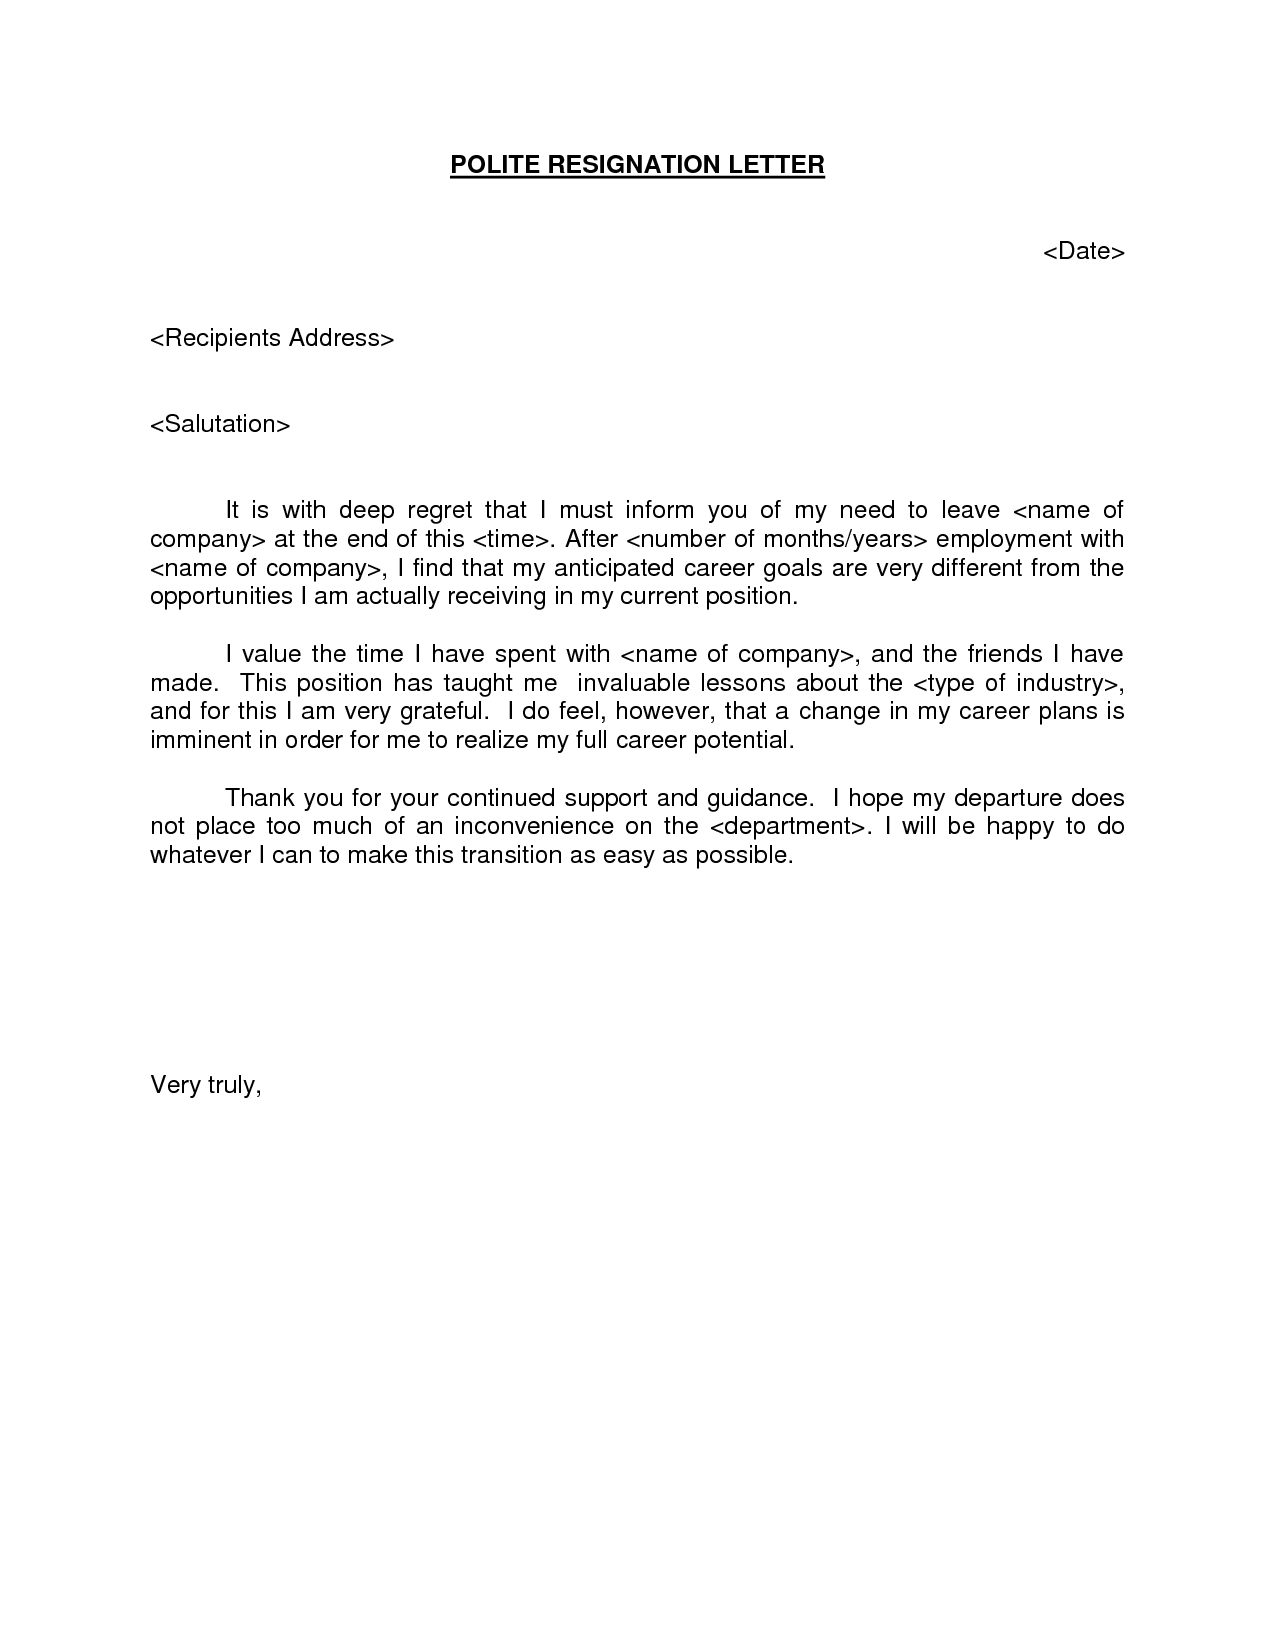 Resignation letter letter of resignation meaning effective resignation letter letter of resignation meaning effective immediately and simple expocarfo Images